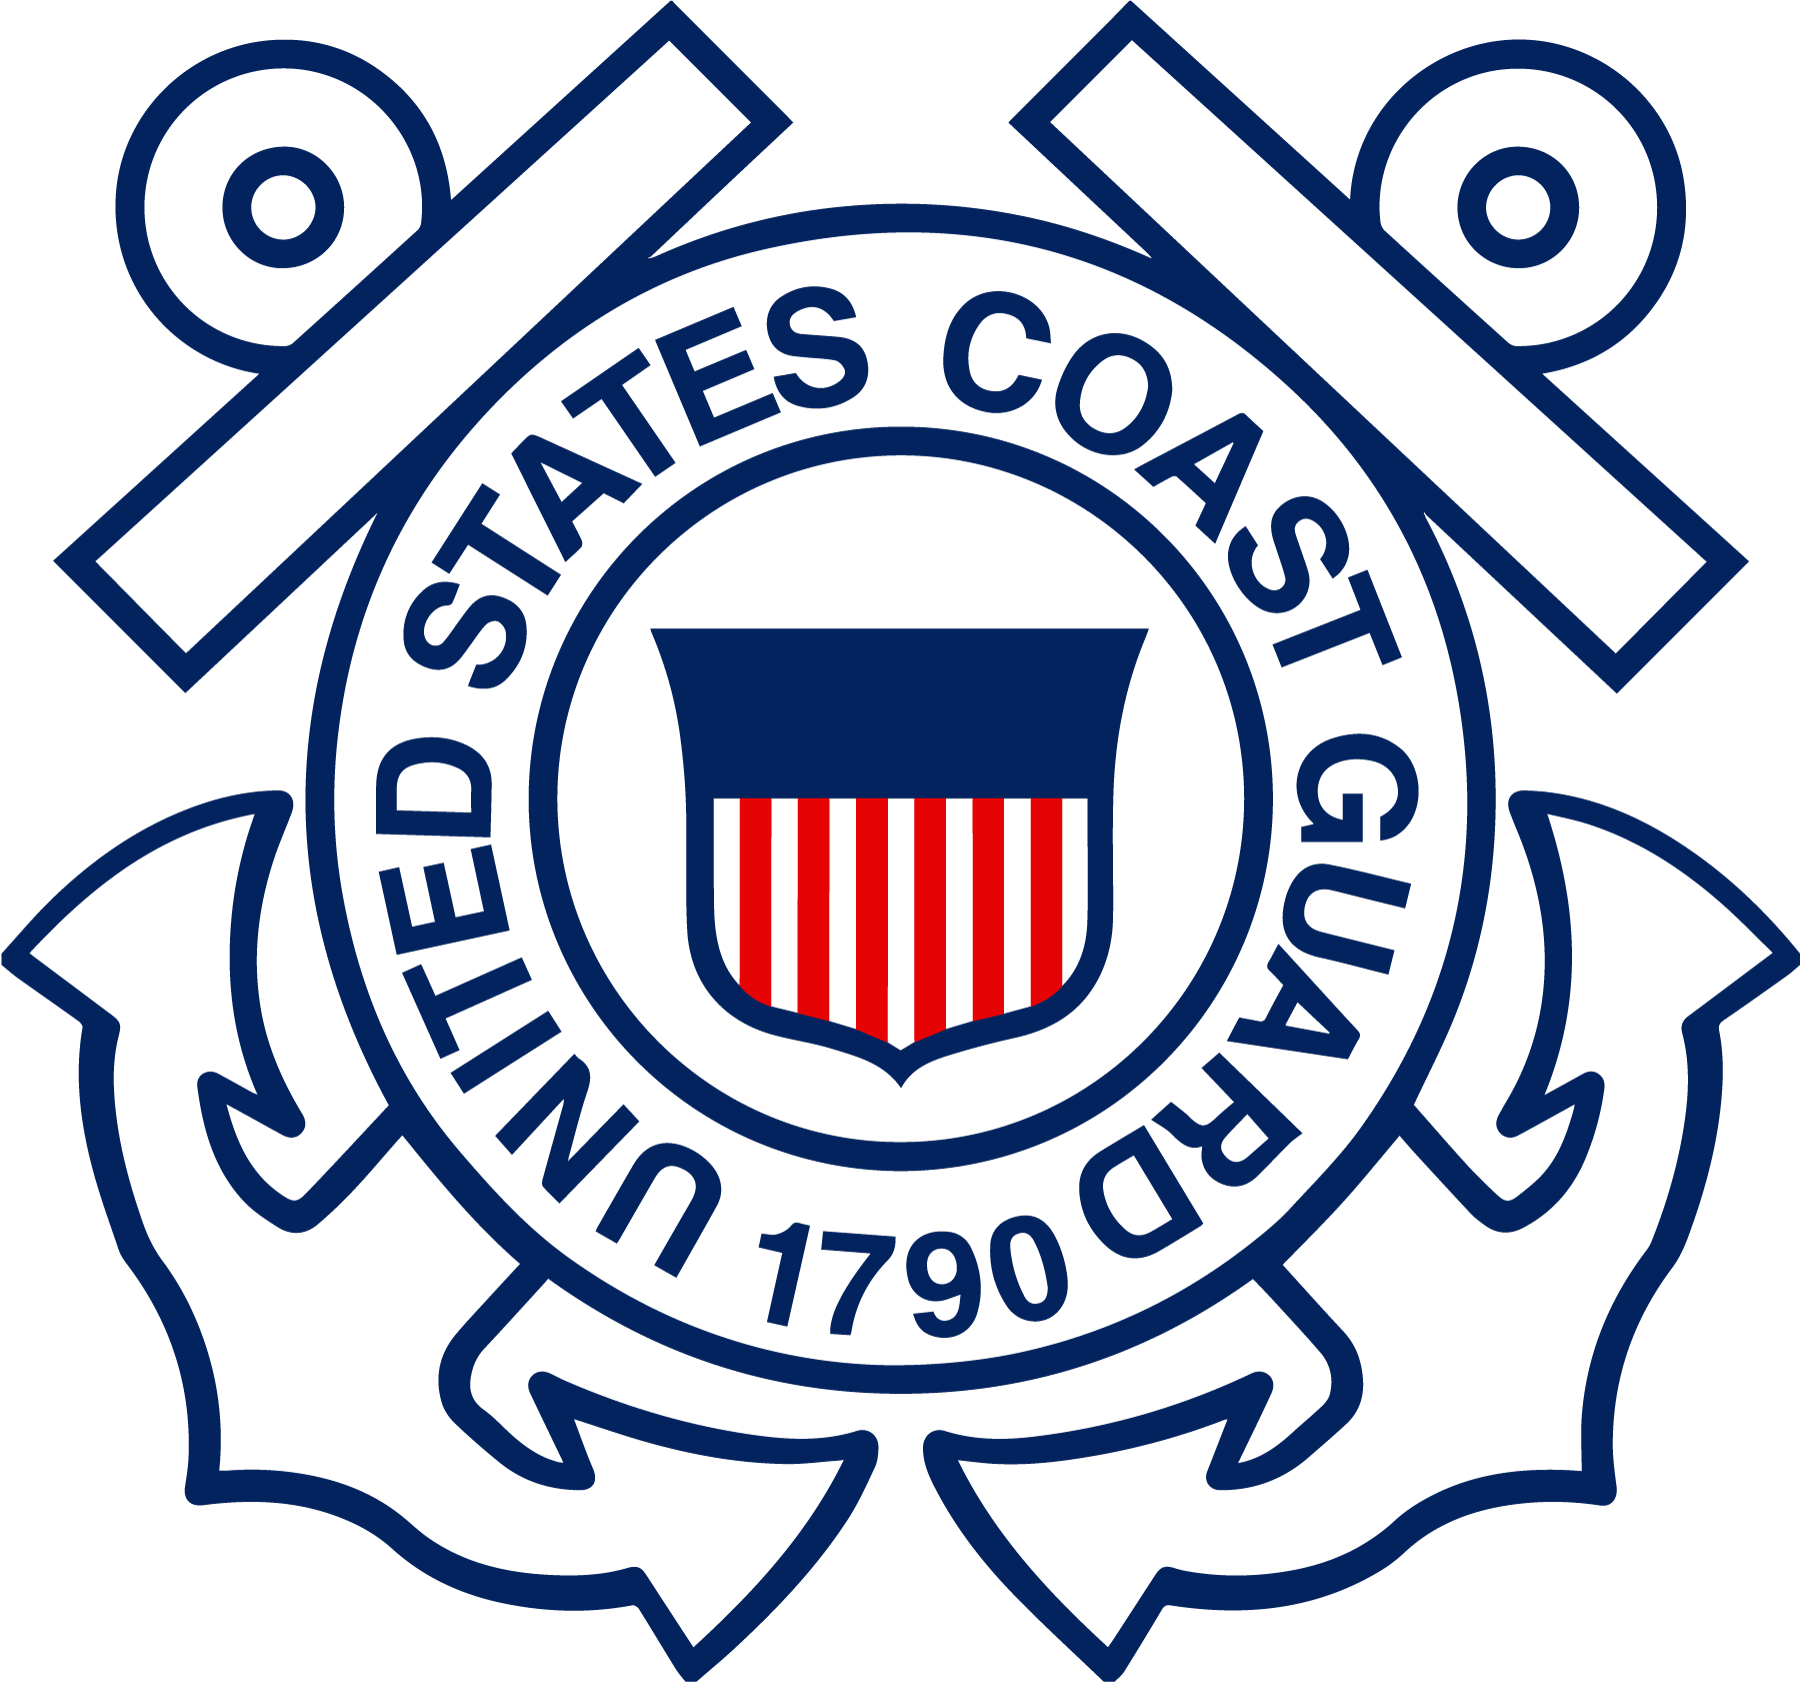 Us coast guard seal png. Military logos vector army